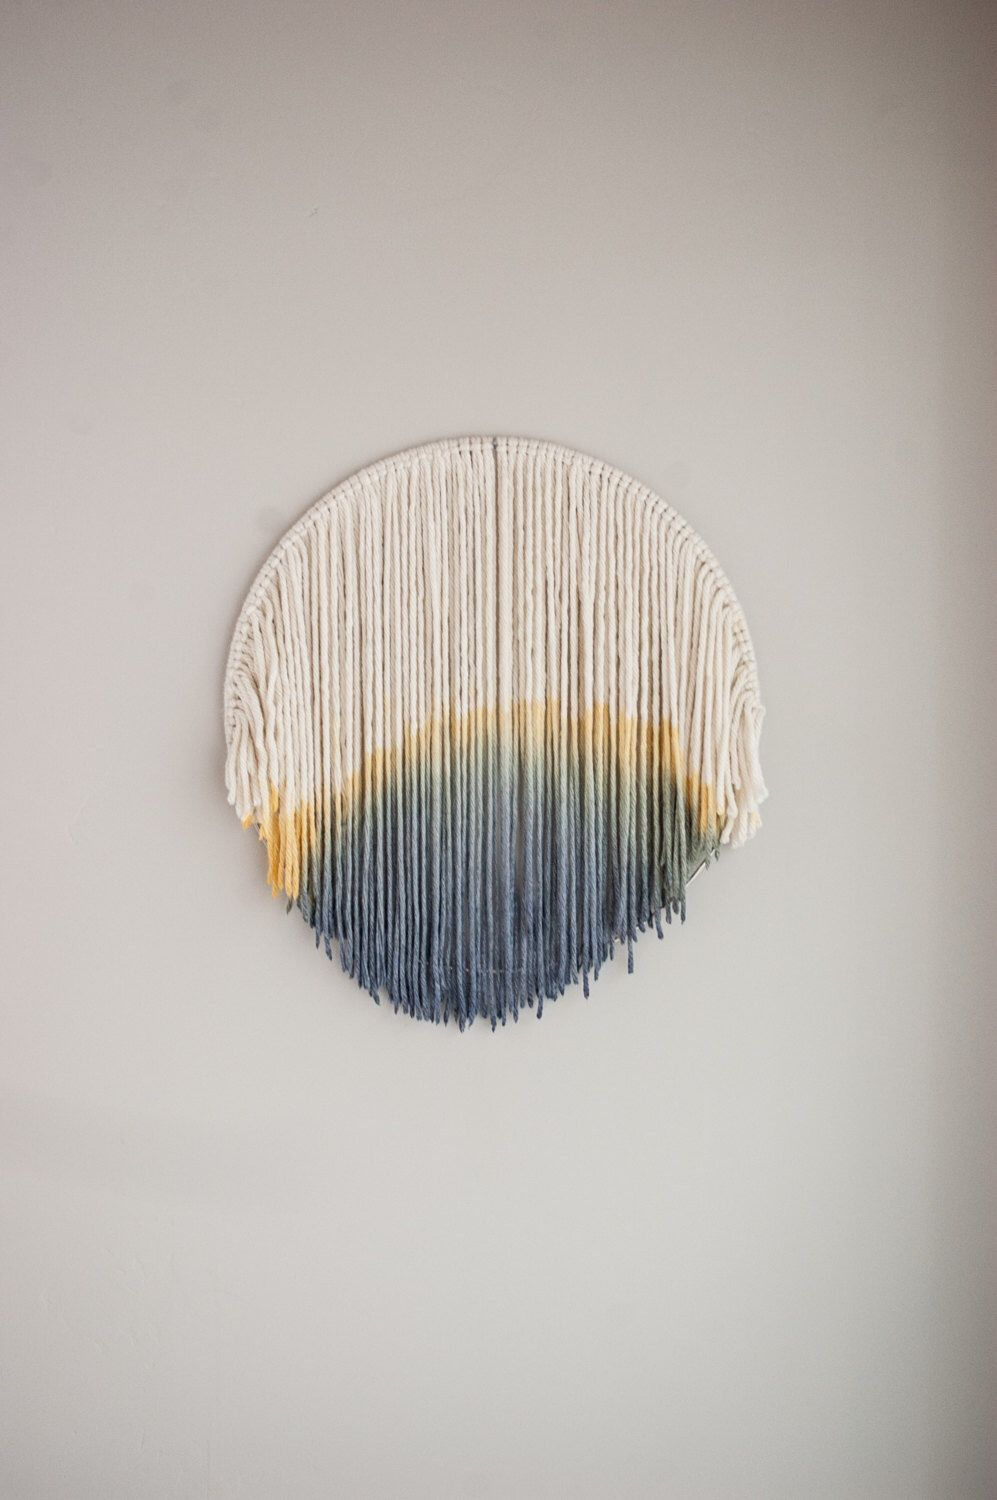 Yarn wall hanging | dip dyed wall hanging | round wall hanging | bohemian by Thoseindiemommies on Etsy https://www.etsy.com/listing/504823645/yarn-wall-hanging-dip-dyed-wall-hanging